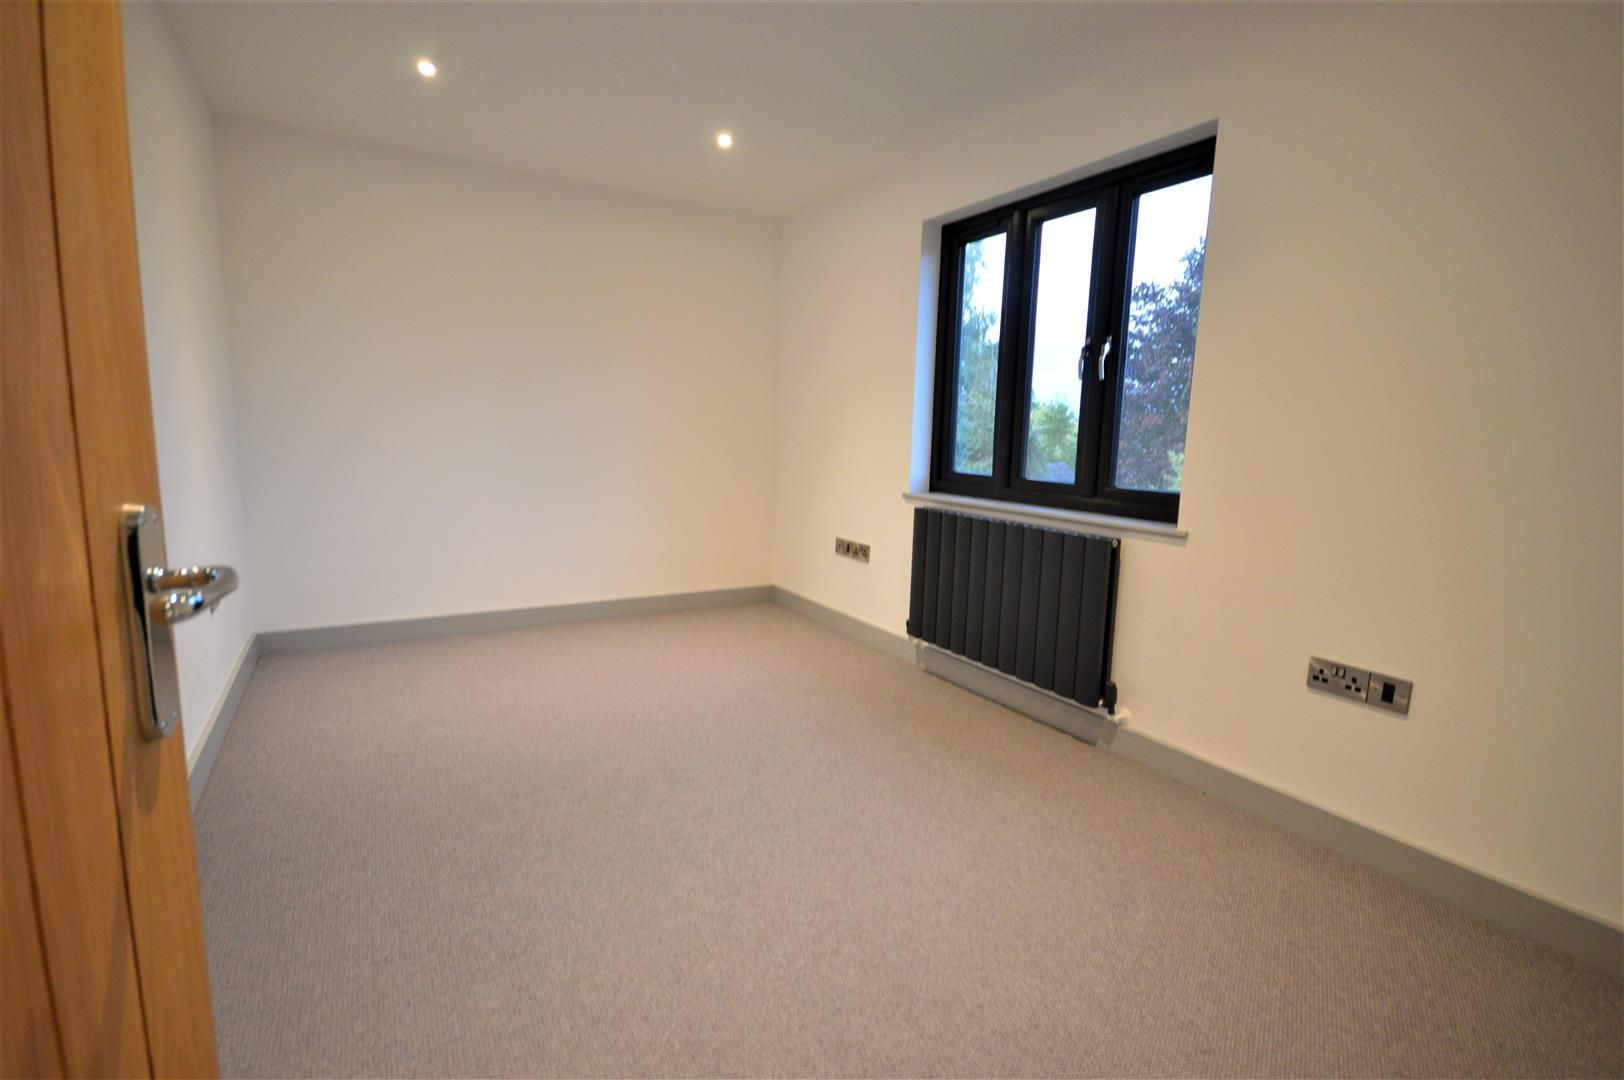 4 bed detached for sale in Brimfield 14